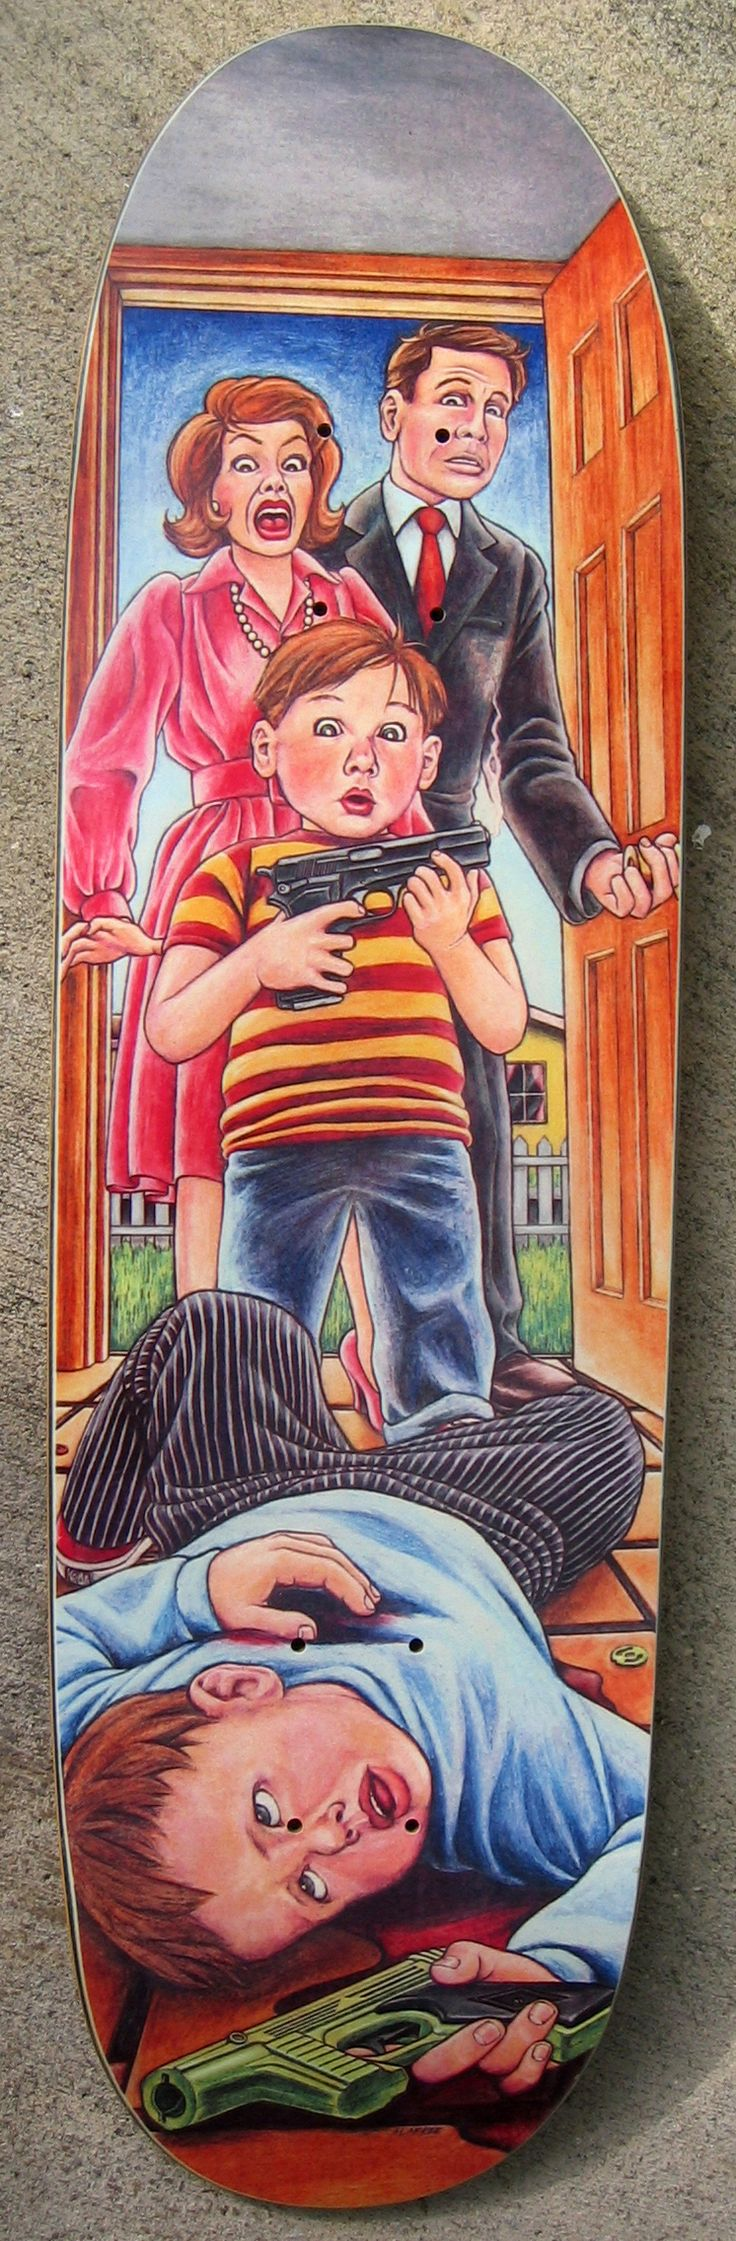 «Accidental Gun Death« Guy Mariano pro model by Blind skateboards – 1992 – Art by Marc McKee